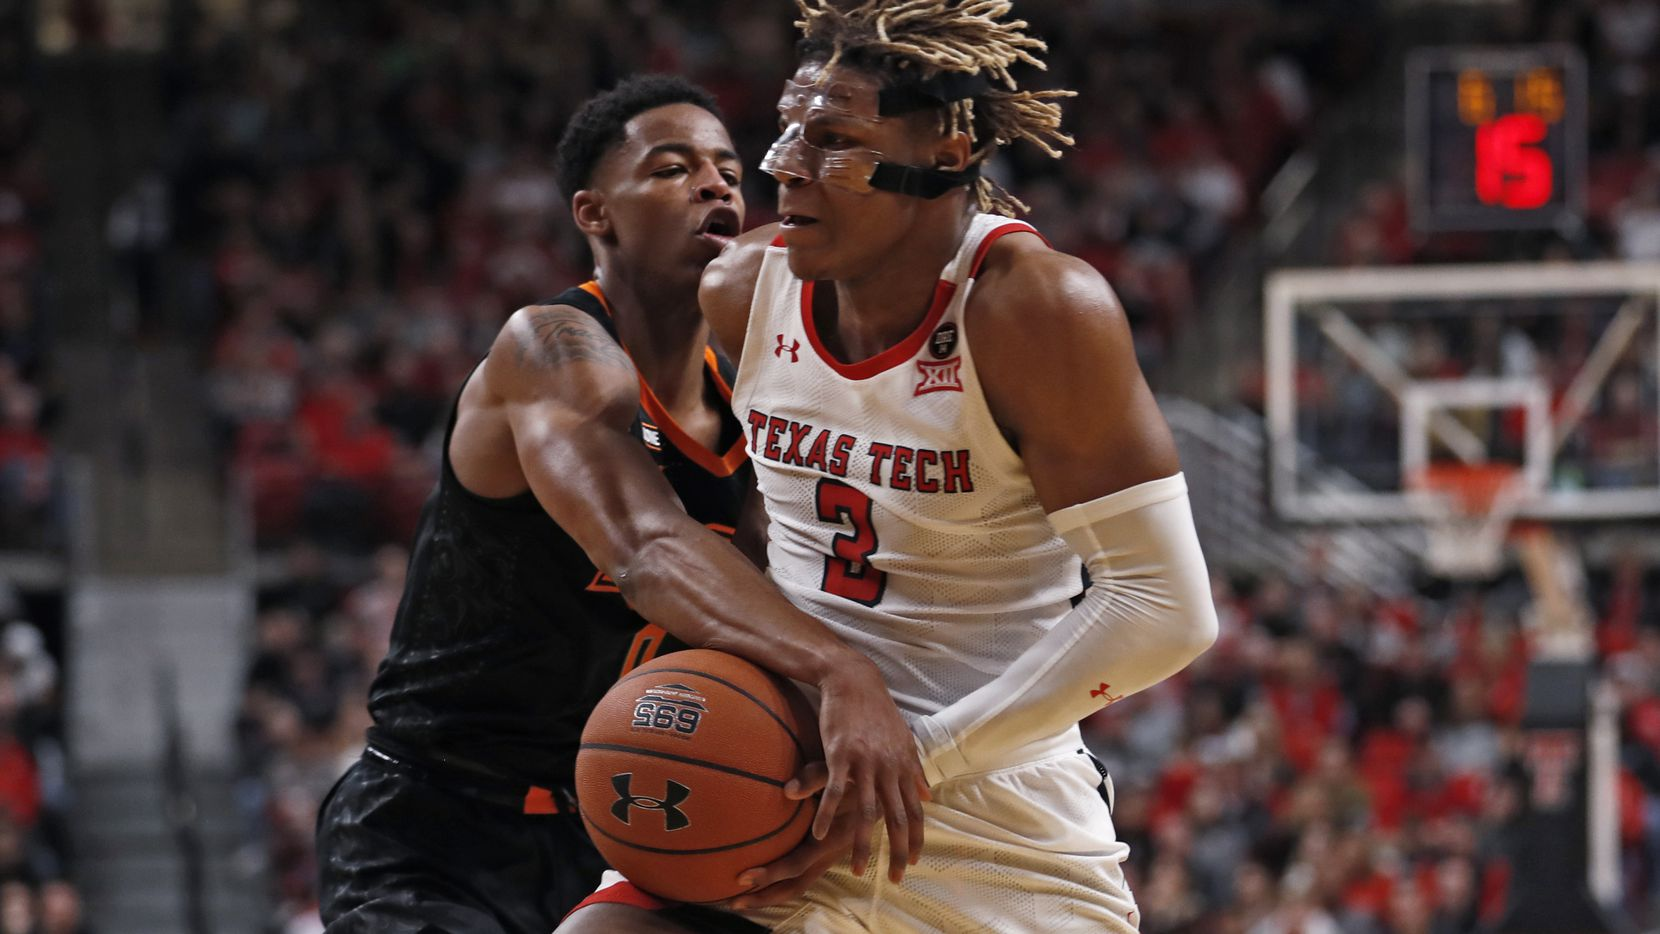 Oklahoma State's Avery Anderson III (0) tries to steal the ball away from Texas Tech's Jahmi'us Ramsey (3) during the first half of an NCAA college basketball game Saturday, Jan. 4, 2020, in Lubbock, Texas.